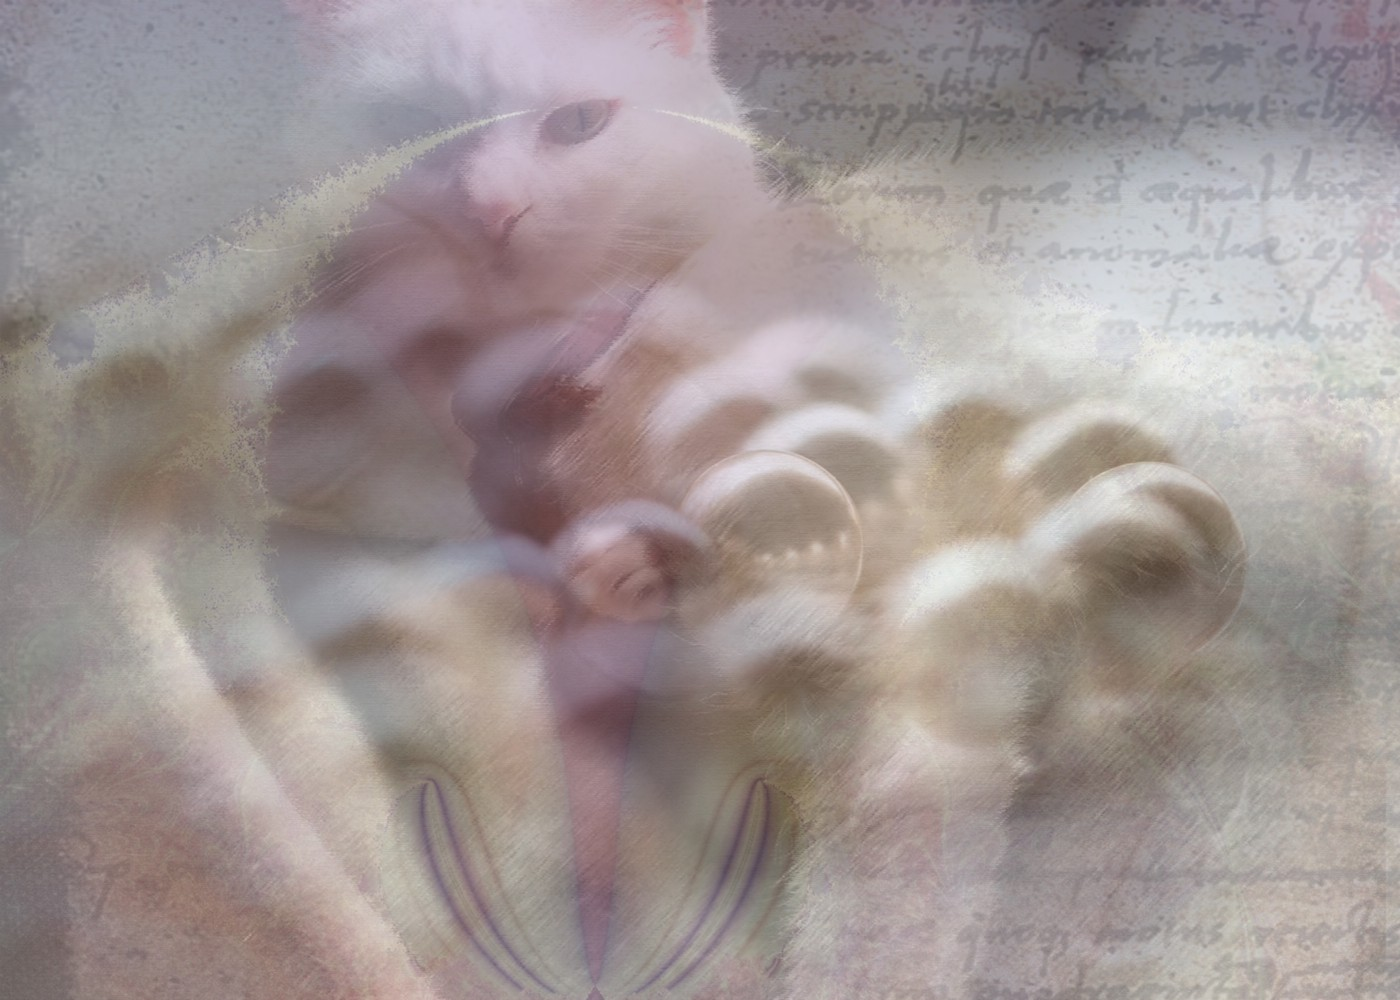 Composite image of a white cat, string of beads, a page of handwritten script, and a fractal design that resembles female genitalia.